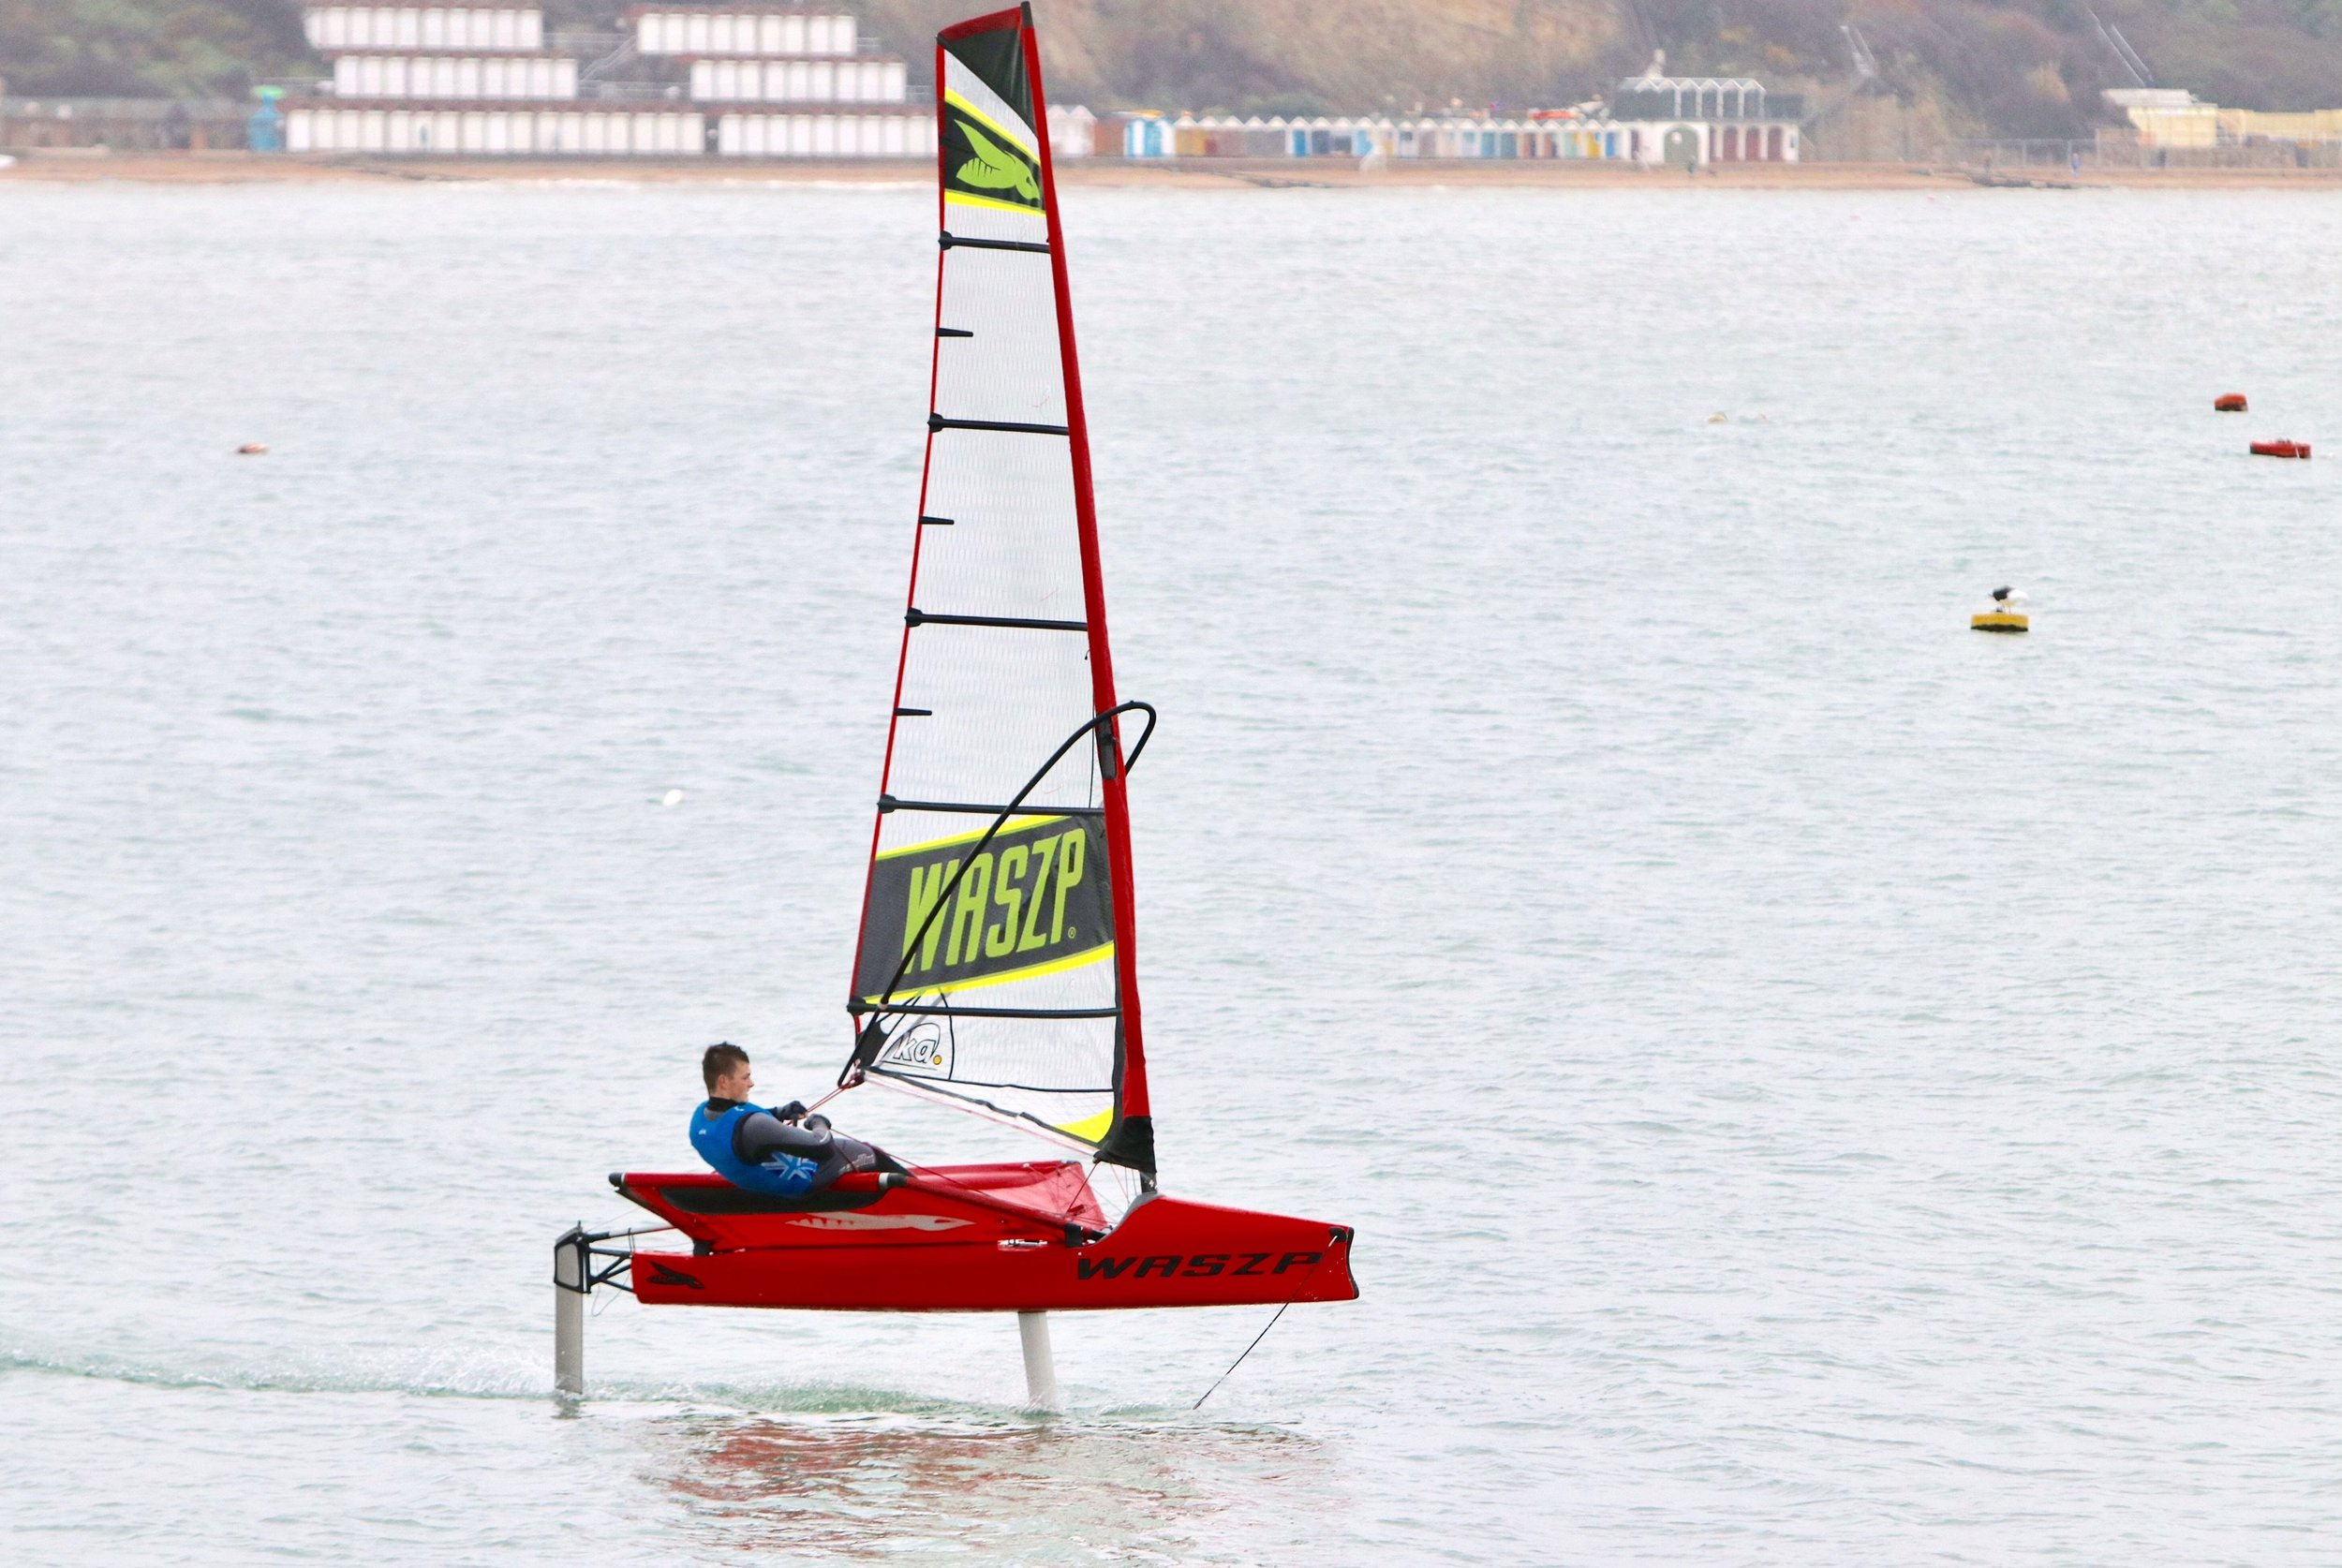 The Waszp foiling dinghy which I am learning how to sail.